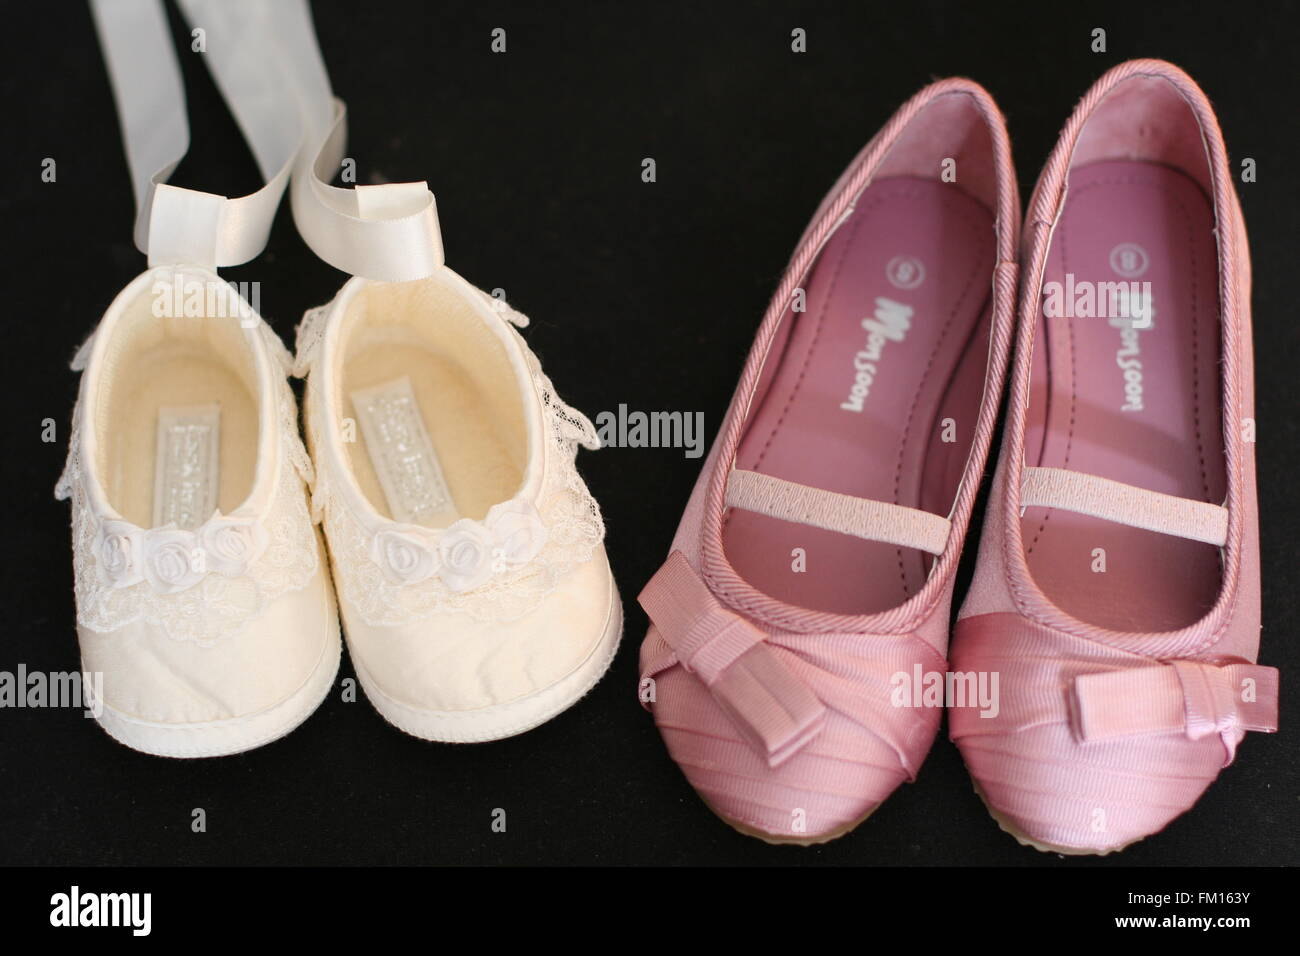 Christening Shoes Immagini   Christening Shoes Fotos Stock - Alamy 205c1be73b5